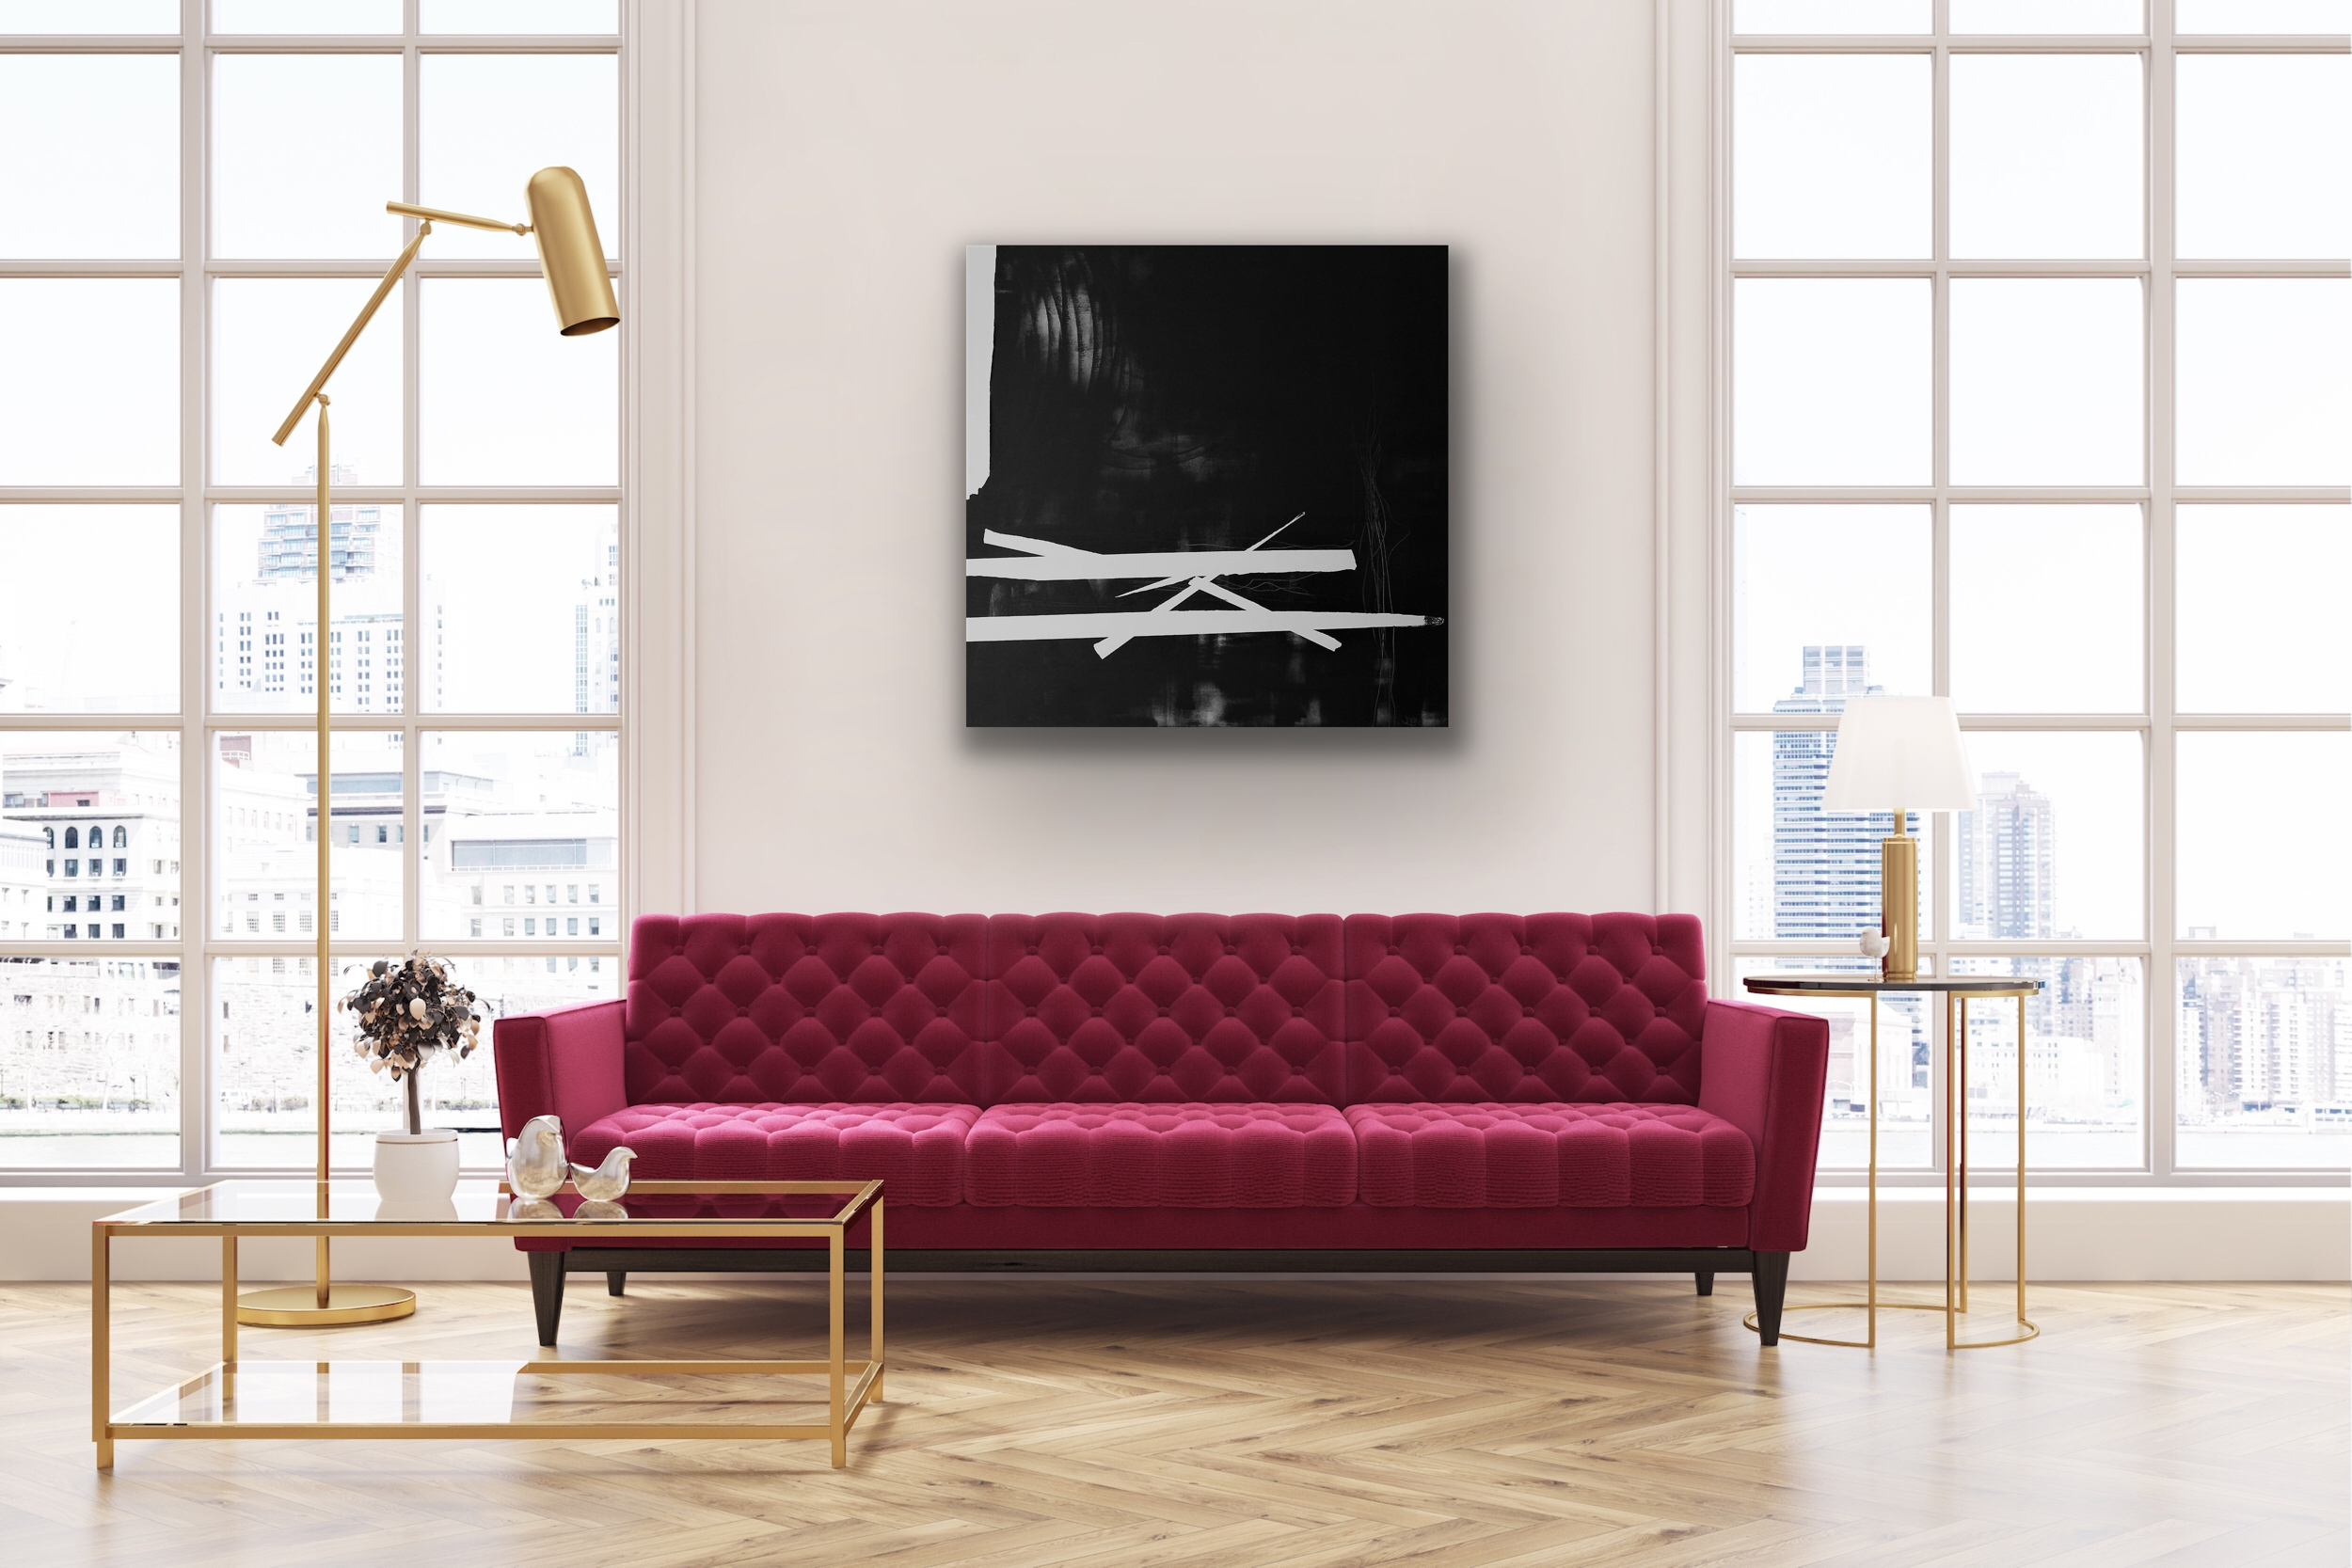 'Unsung lullaby' with pink settee